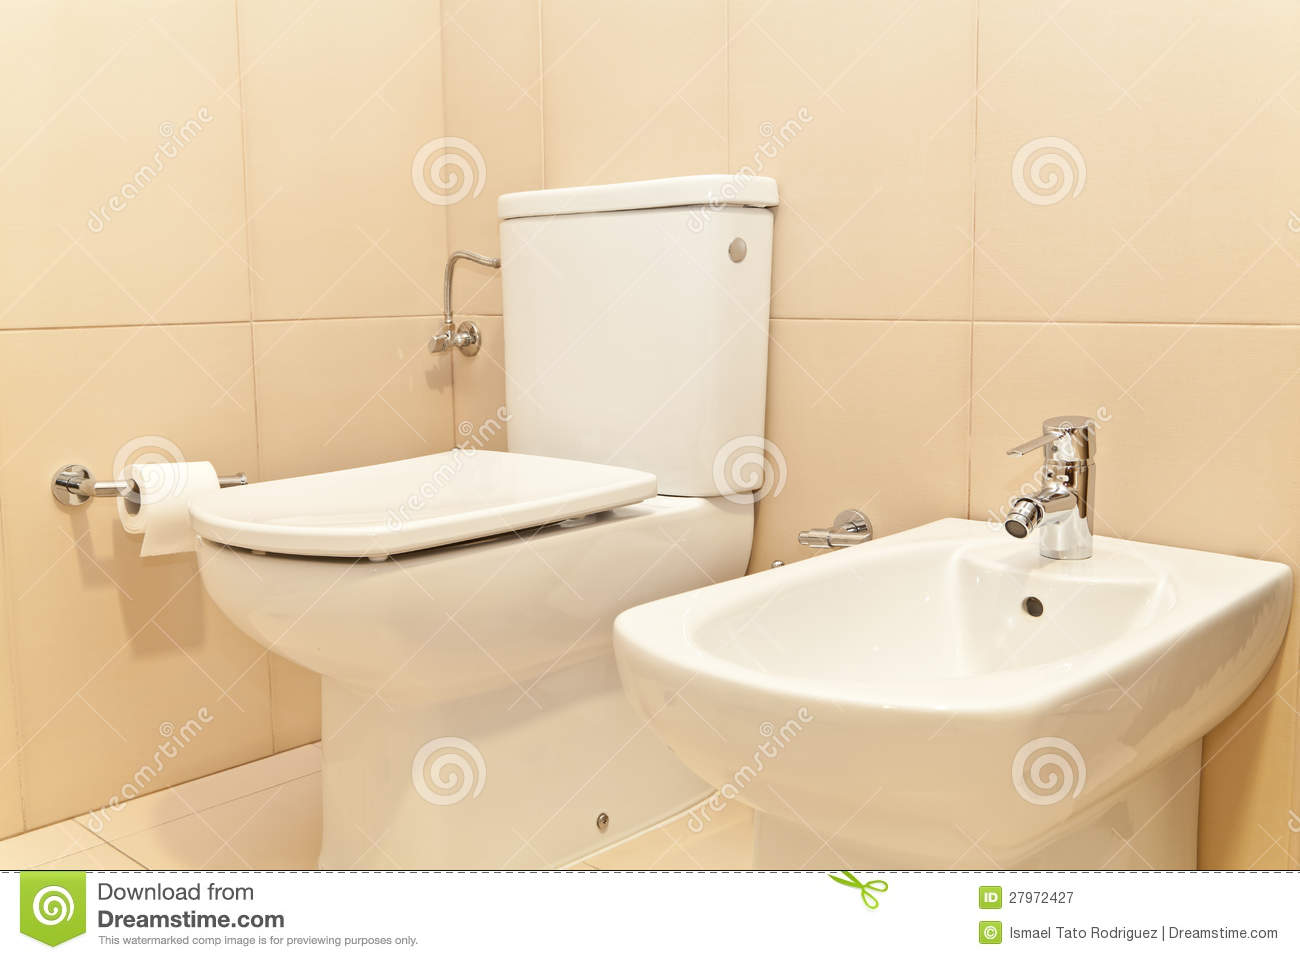 toilet wc and bidet stock image image of contemporary 27972427. Black Bedroom Furniture Sets. Home Design Ideas